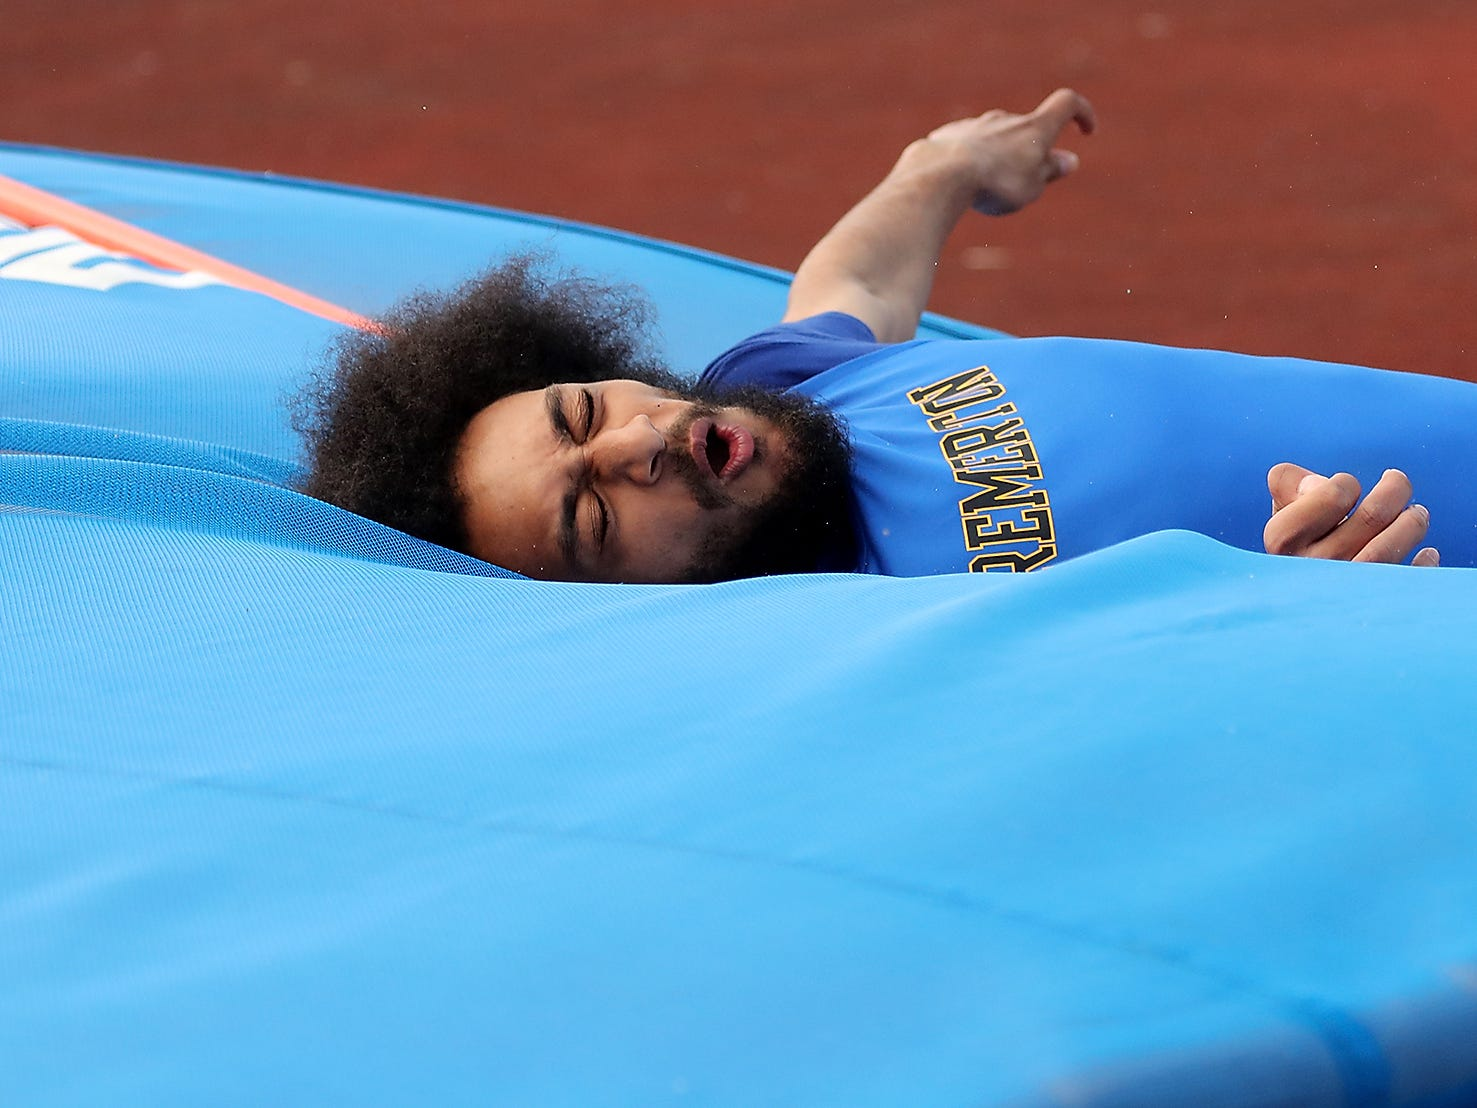 Bremeton's A'ziah Hassan hits the mat and reacts to a failed high jump on Thursday, March 21, 2019.